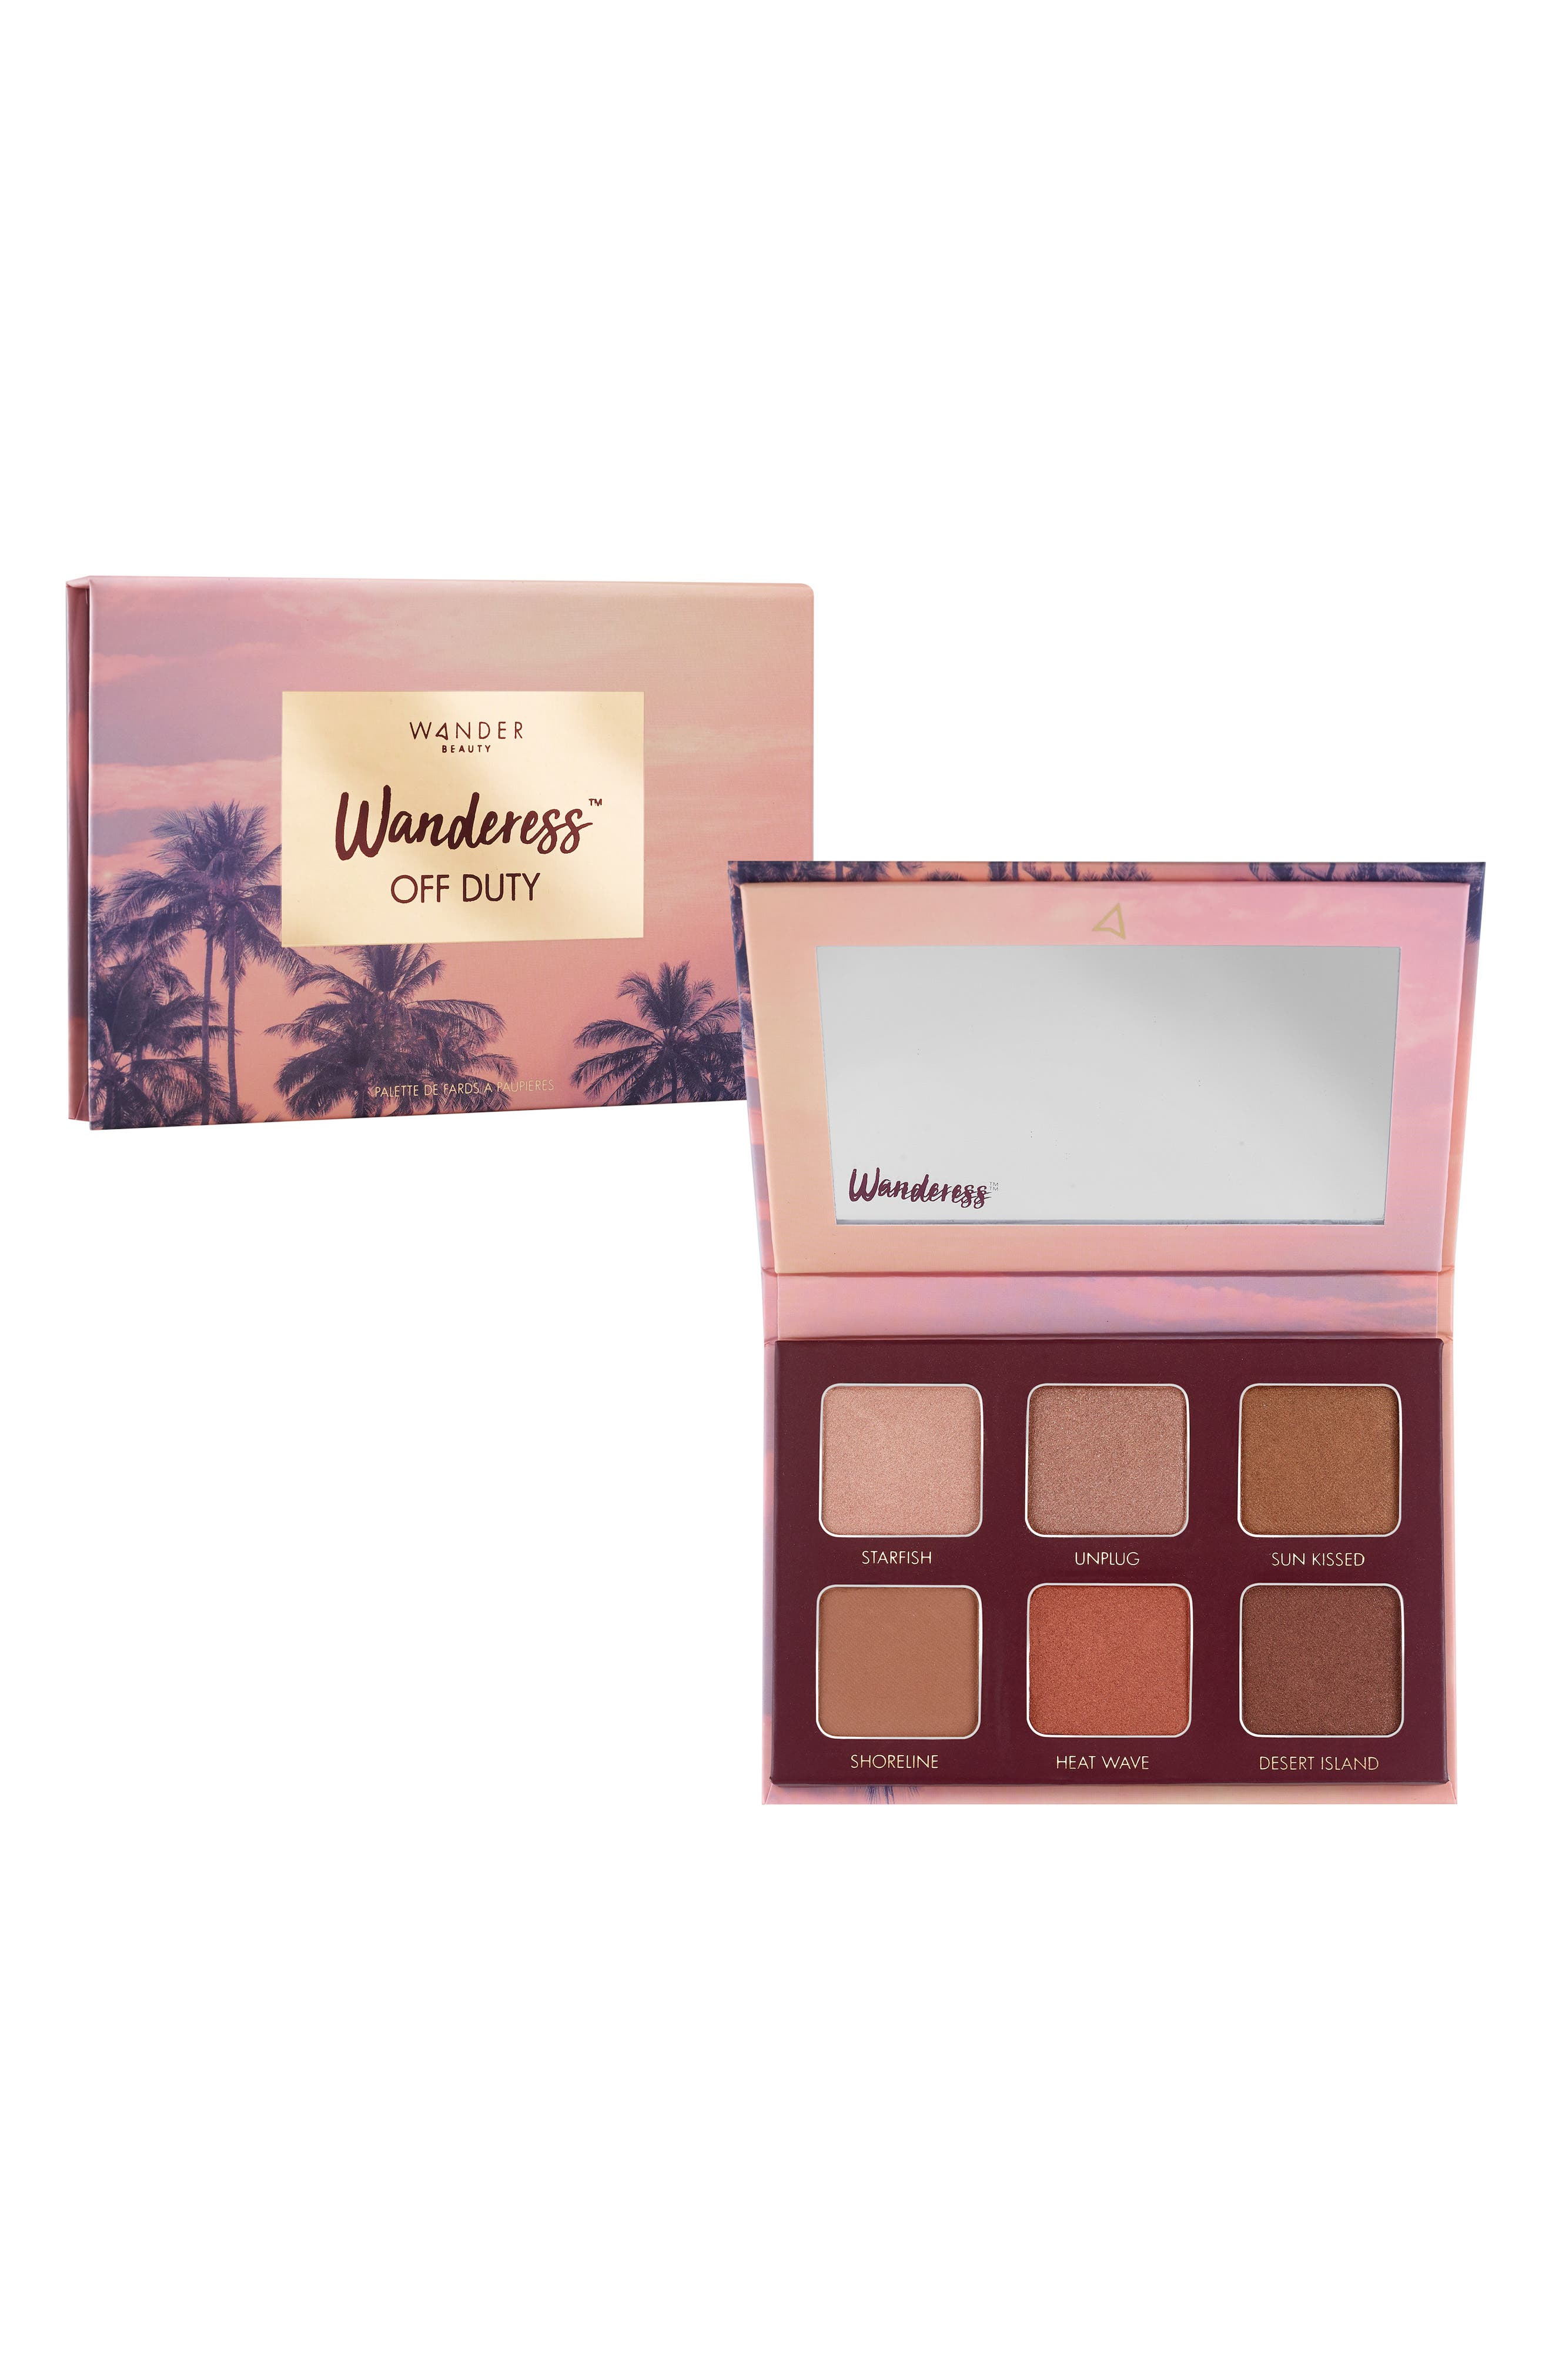 WANDER BEAUTY Wanderess Off Duty Eyeshadow Palette, Main, color, NO COLOR